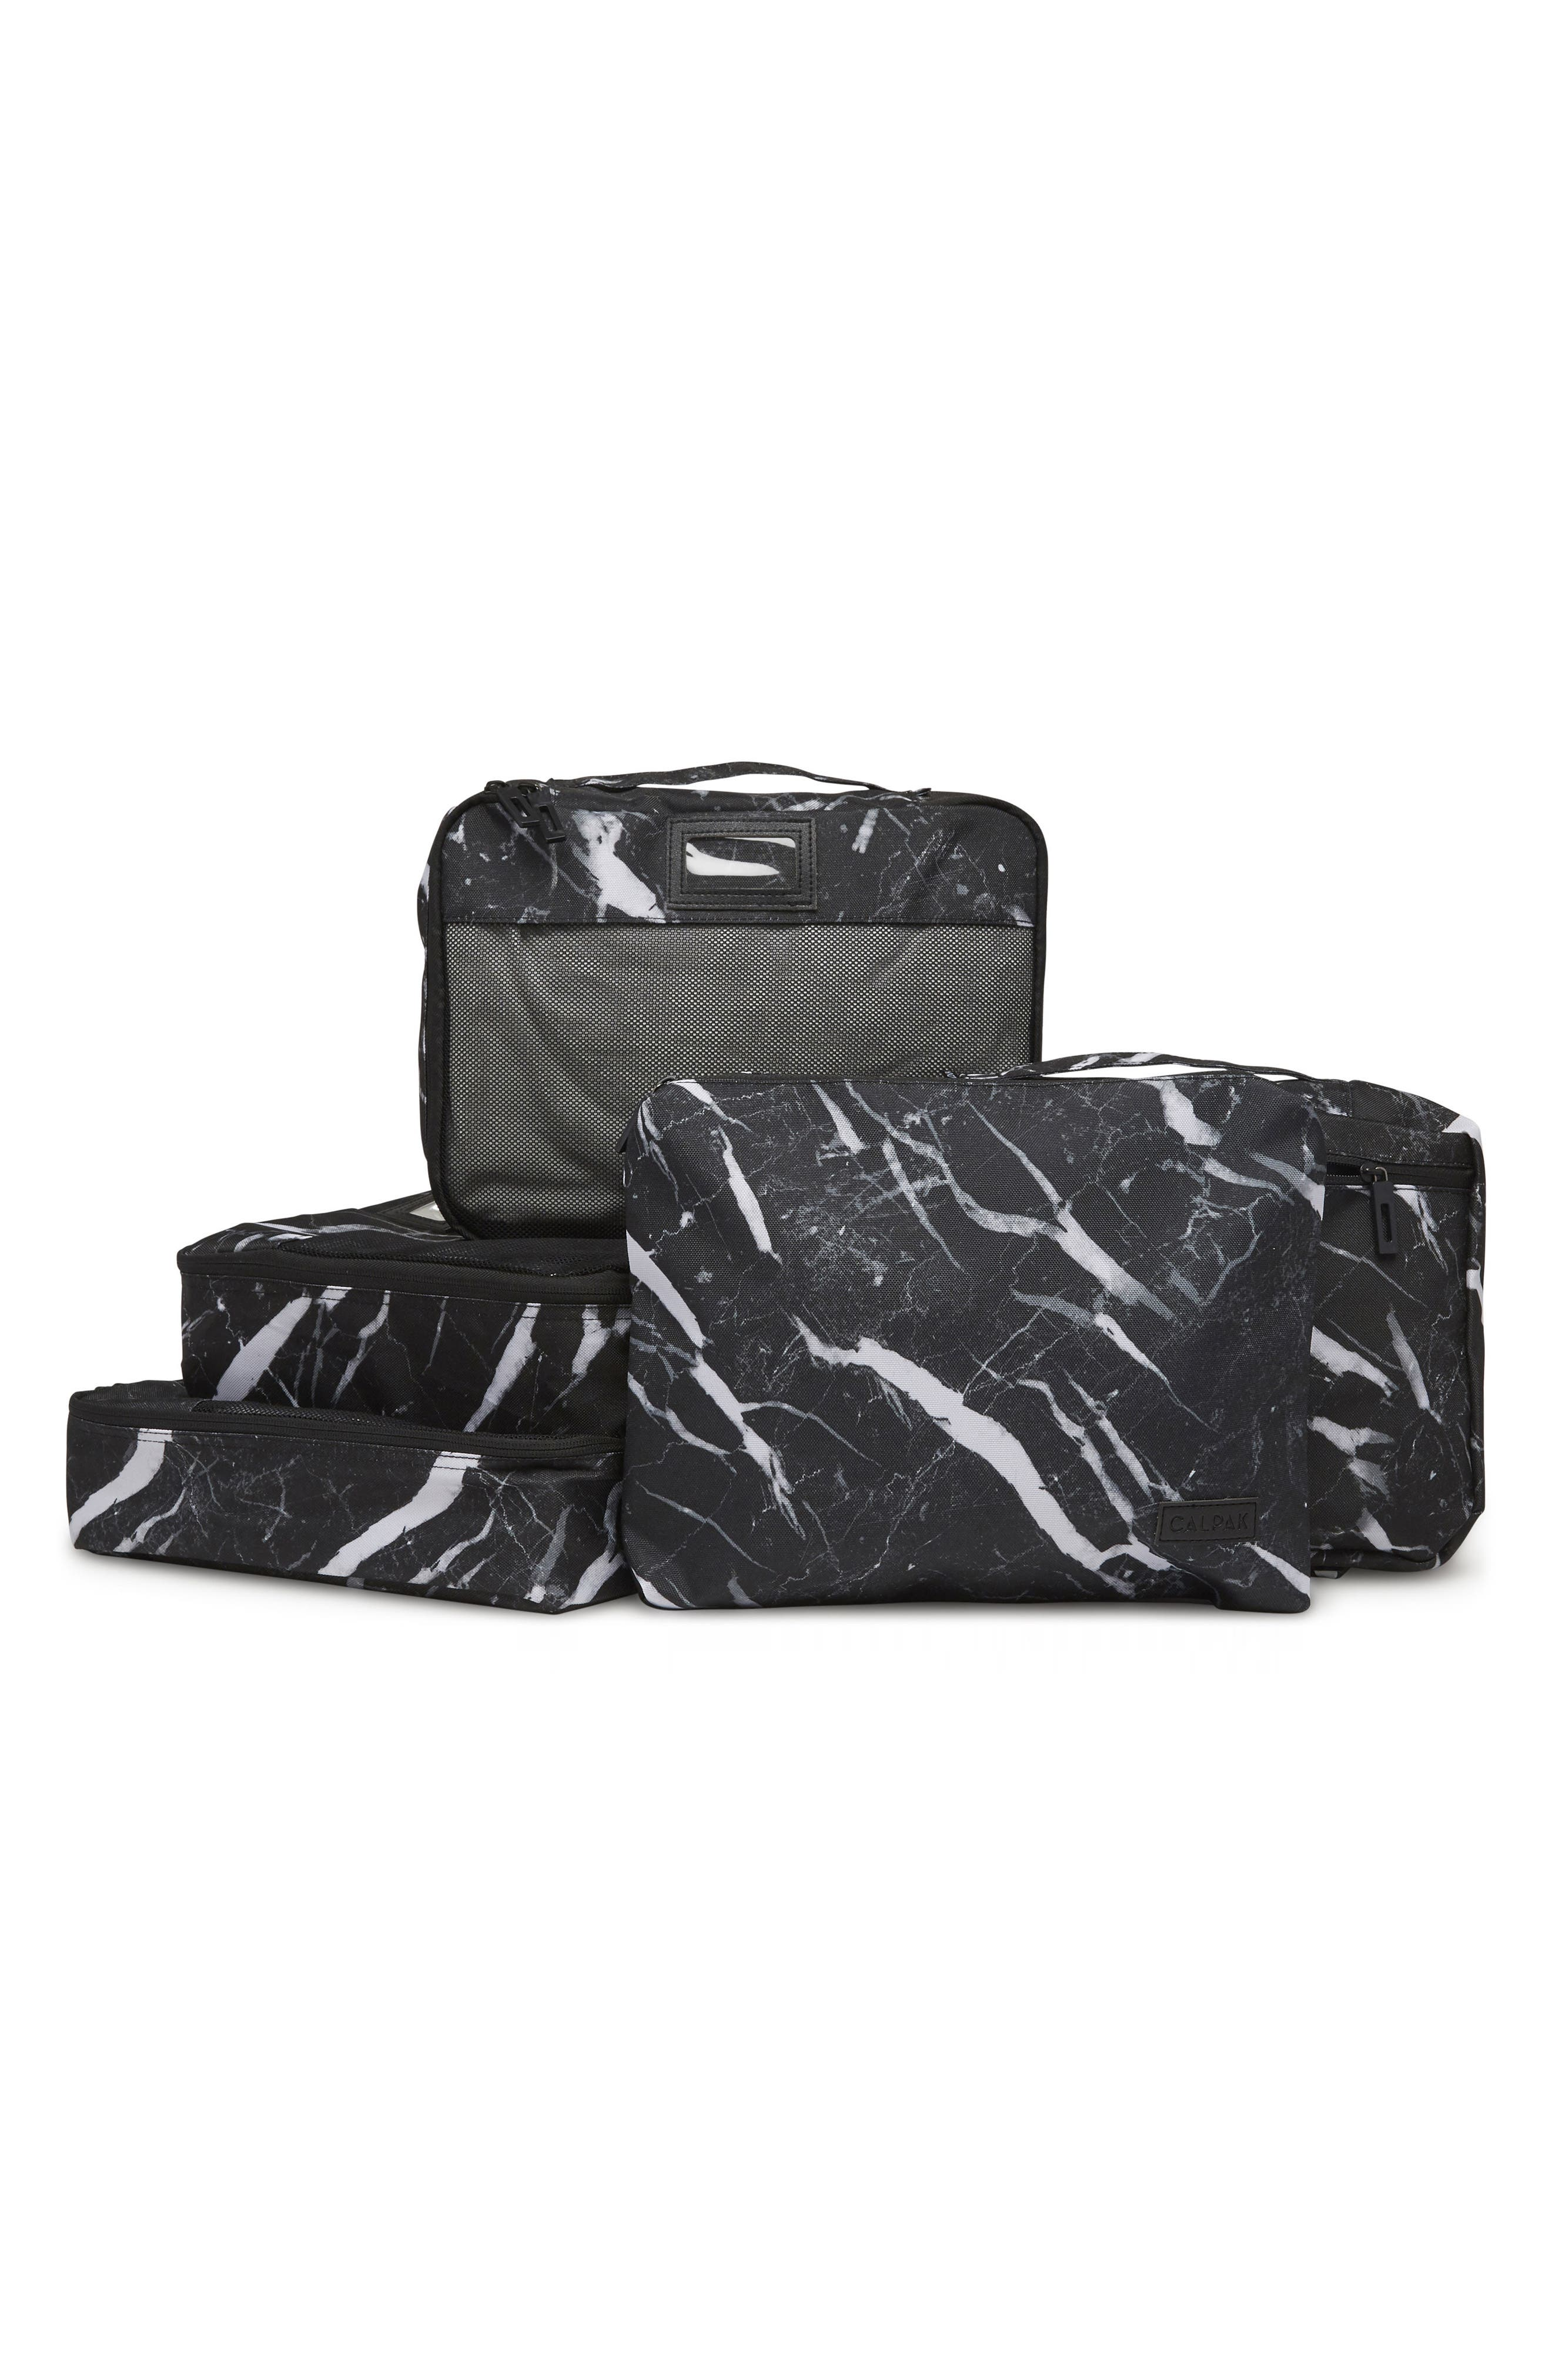 5-Piece Packing Cube Set,                         Main,                         color, MIDNIGHT MARBLE